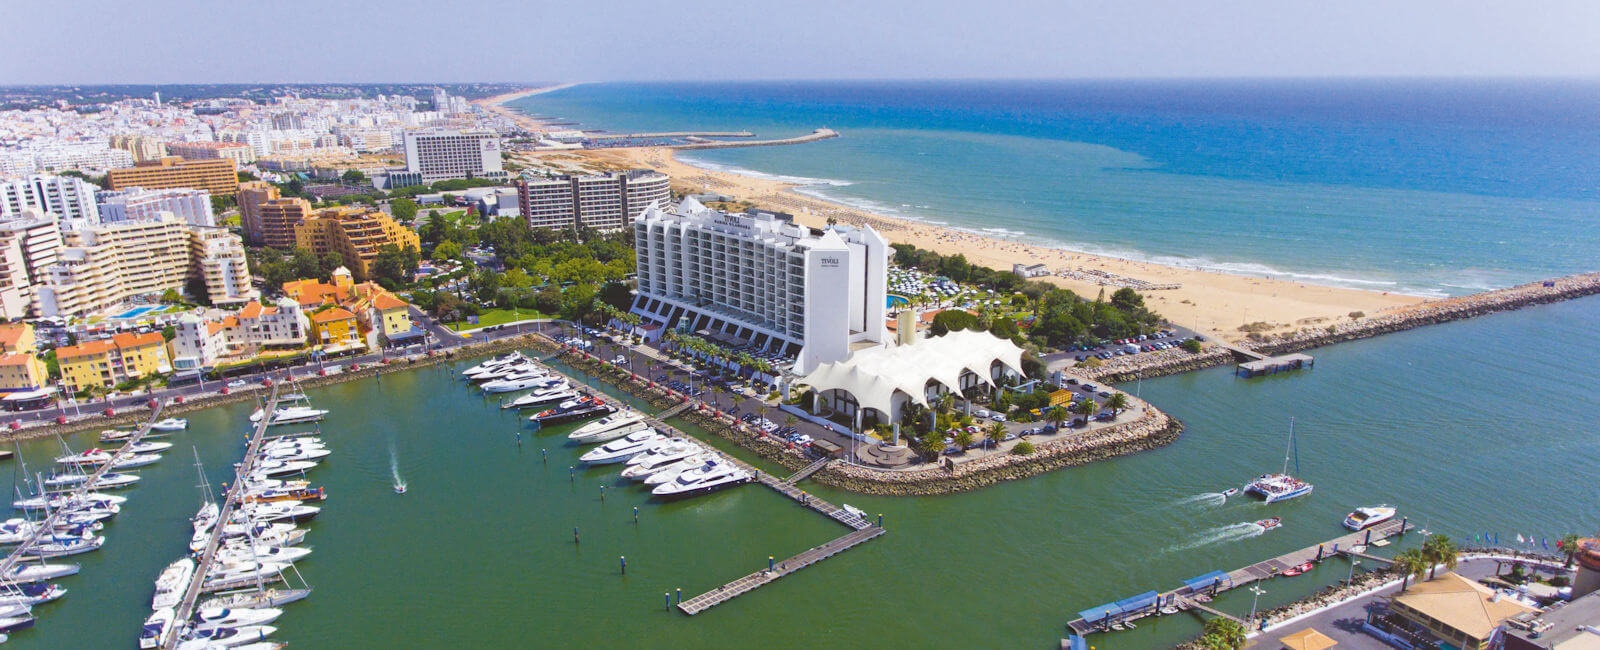 luxury vilamoura holidays